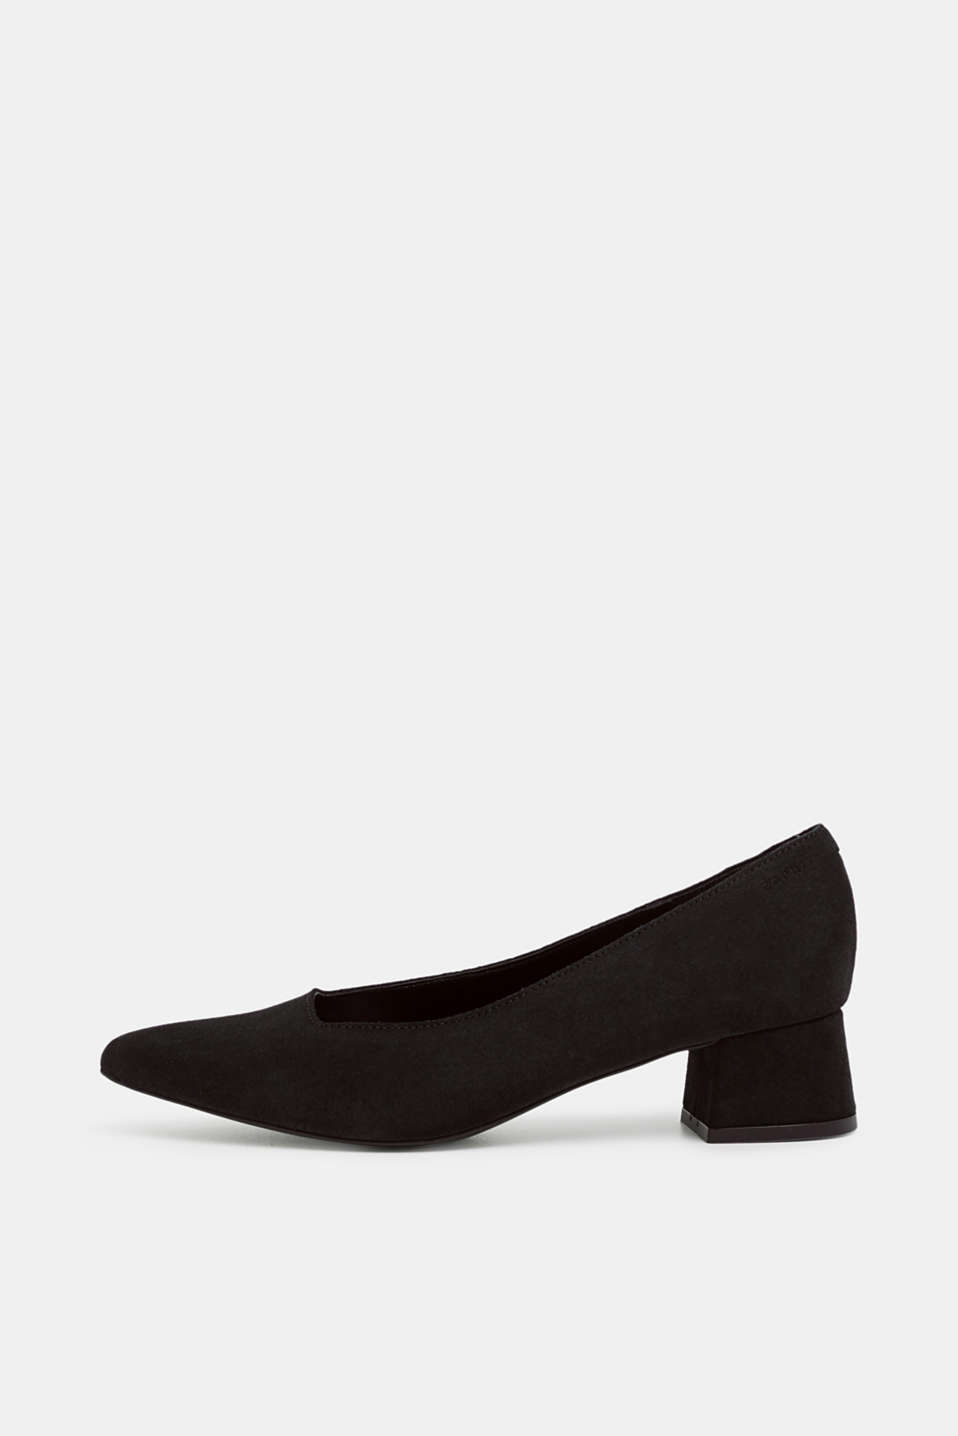 Esprit - Suede court shoes with a block heel